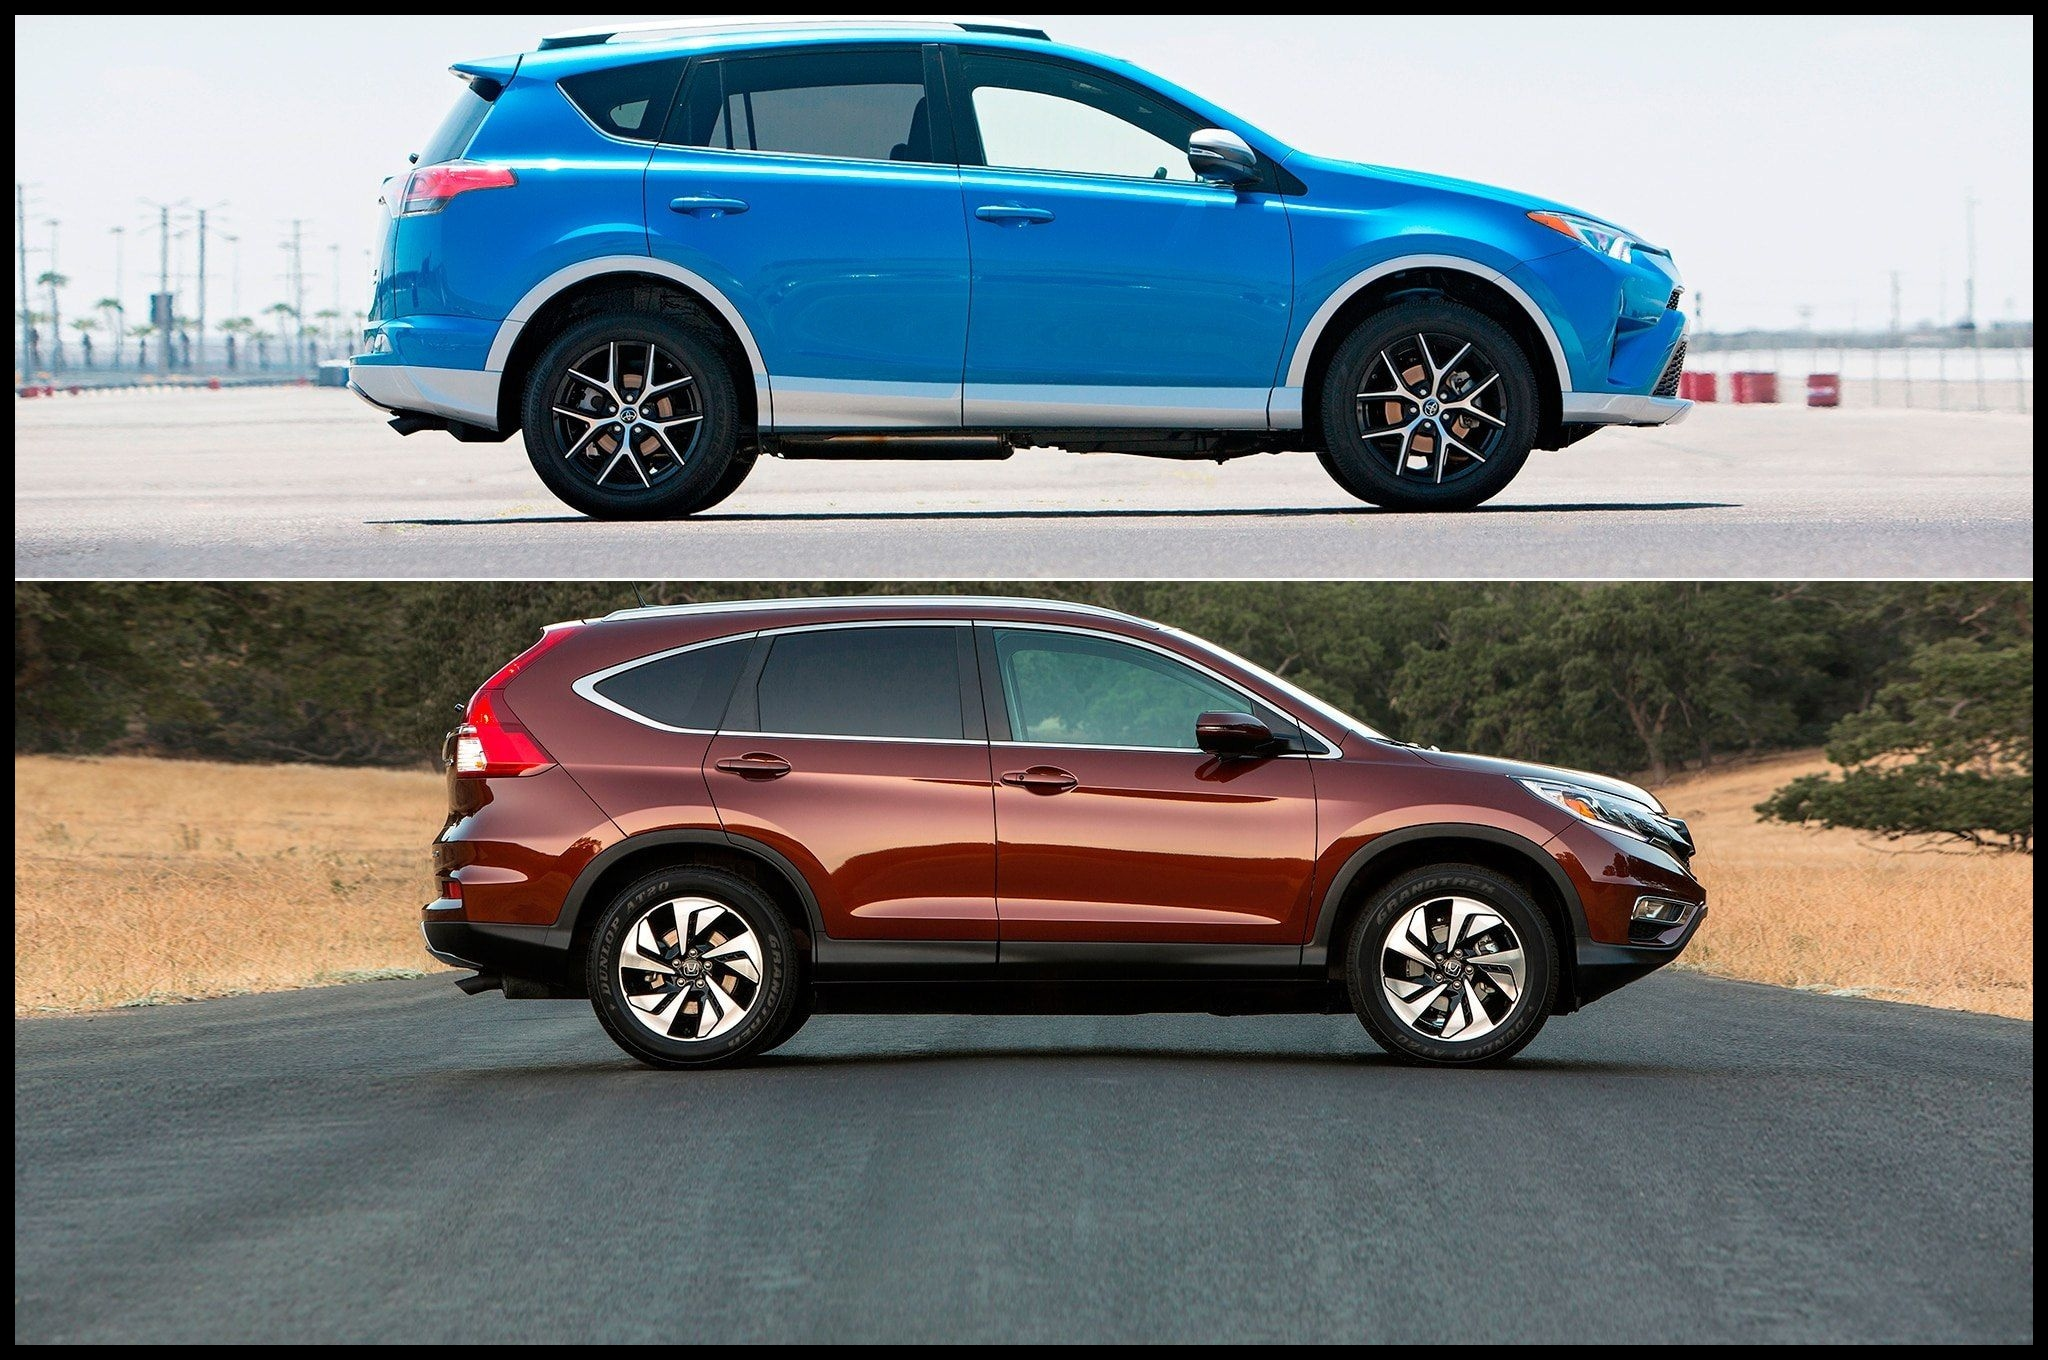 2015 Toyota RAV4 Birmingham Source · Special Honda Crv Vs toyota Rav4 Crv Vs toyota Review Specs and